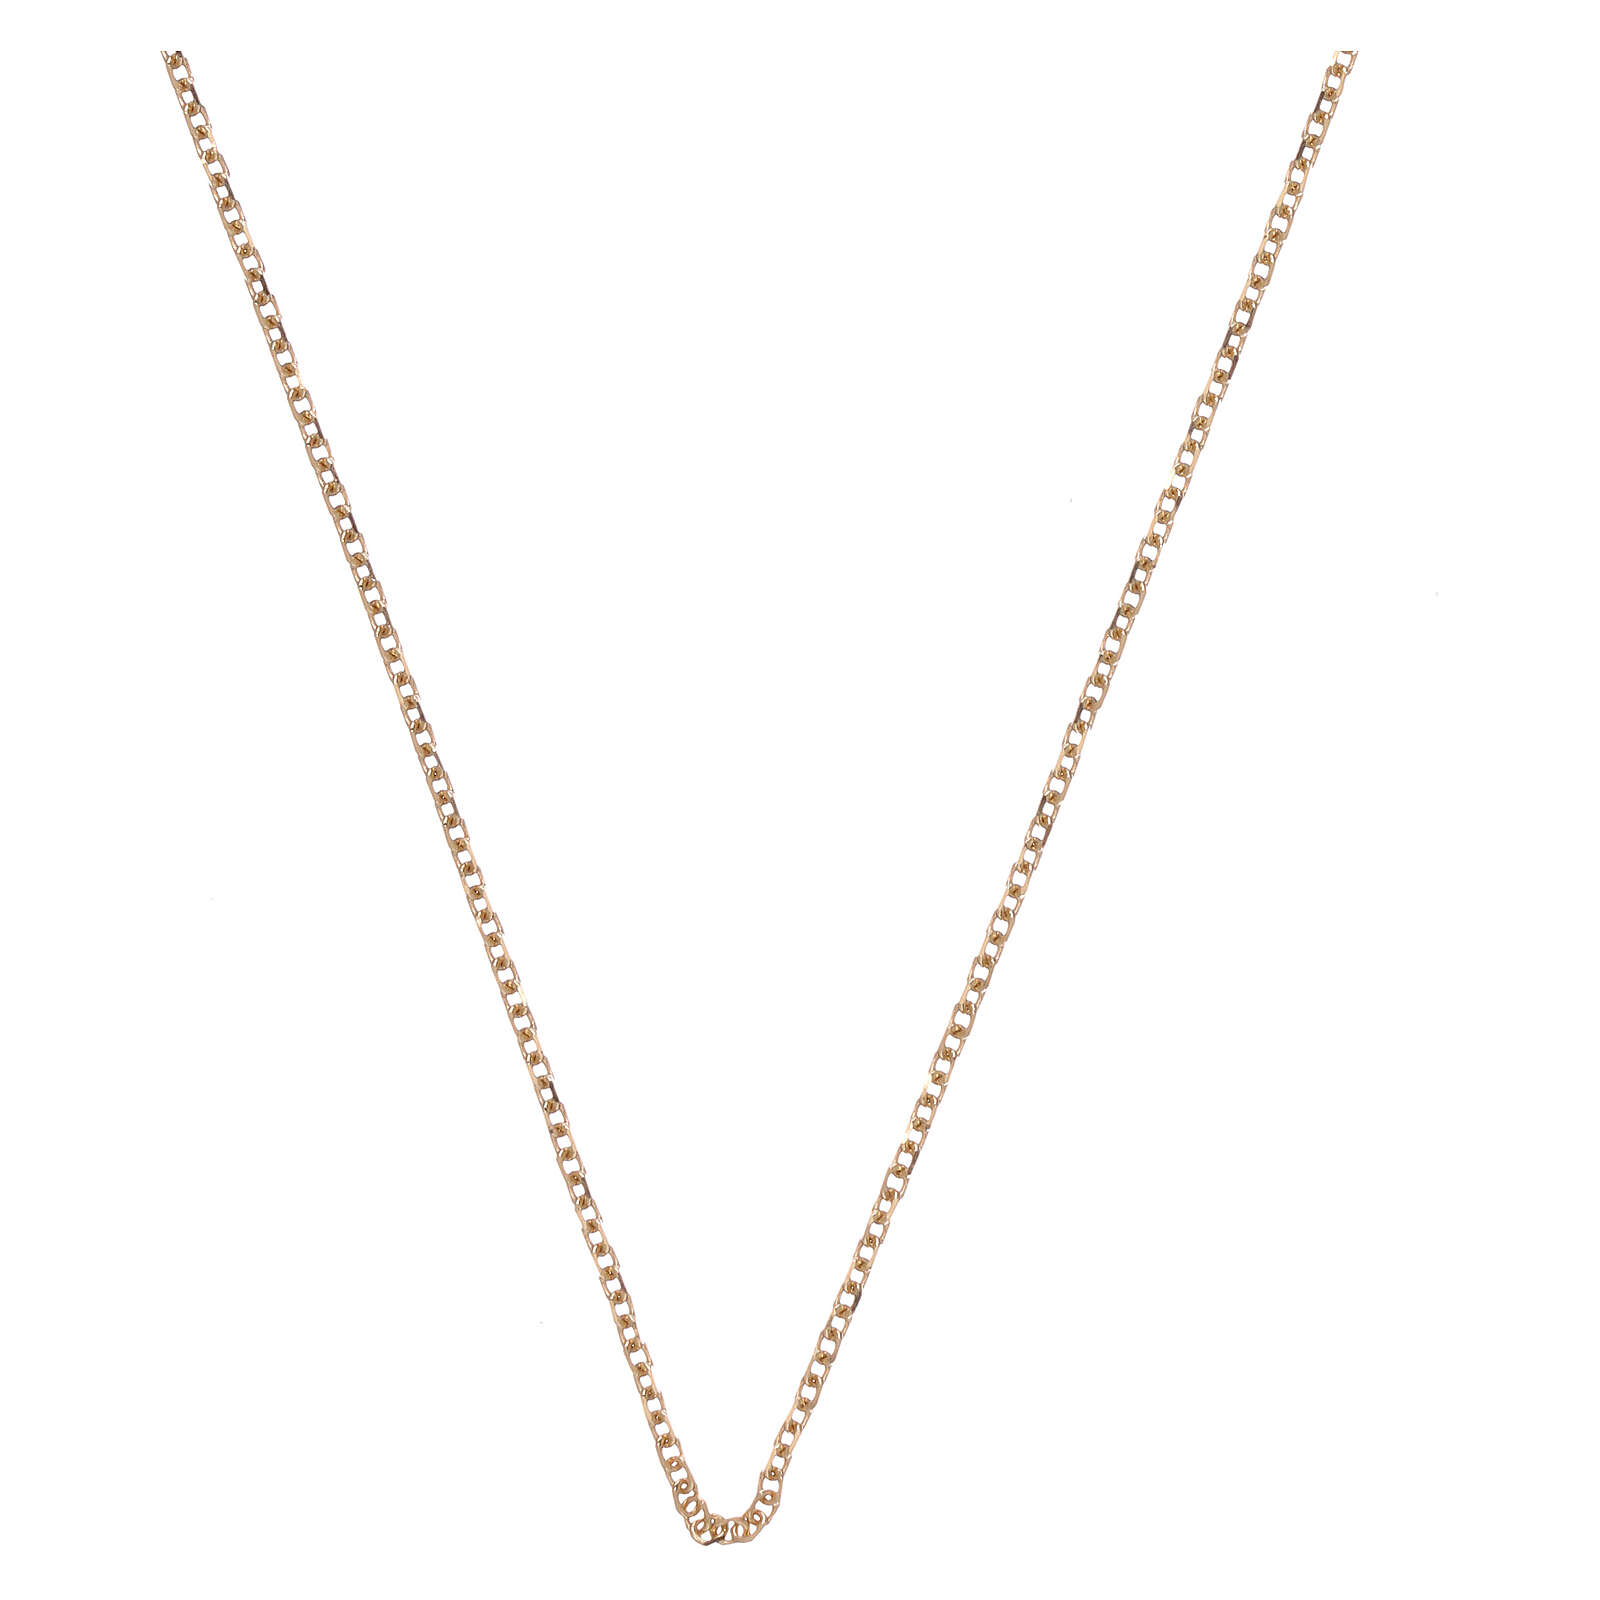 Rolo chain 18-carat yellow diamond-finished gold 16 1/2 + 1 in 4